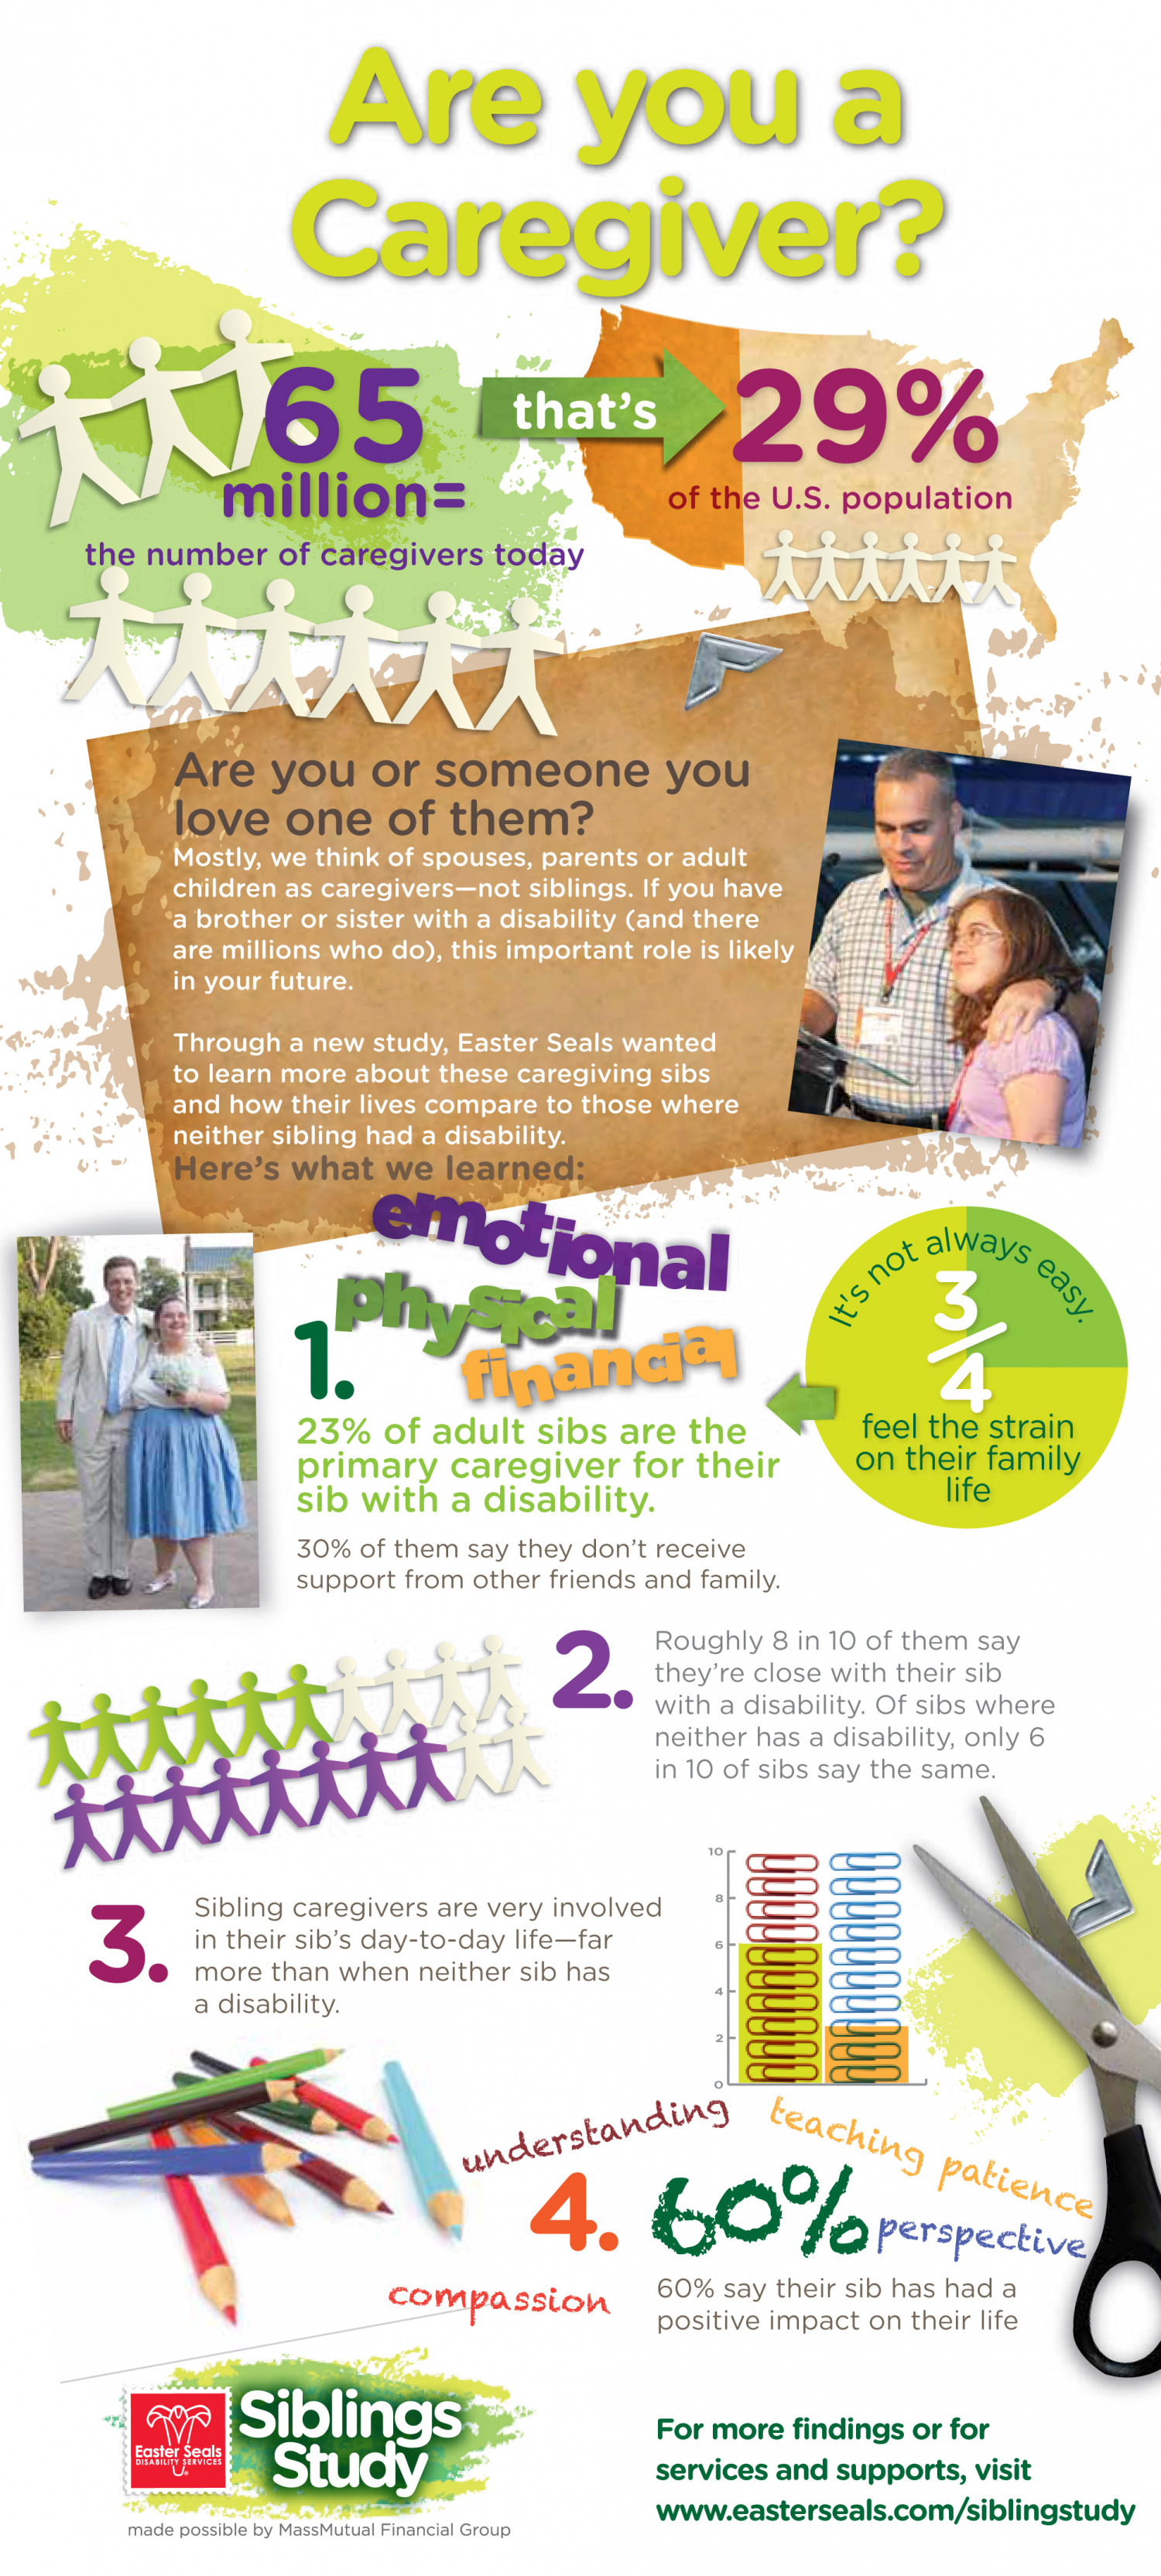 Are You a Caregiver Infographic